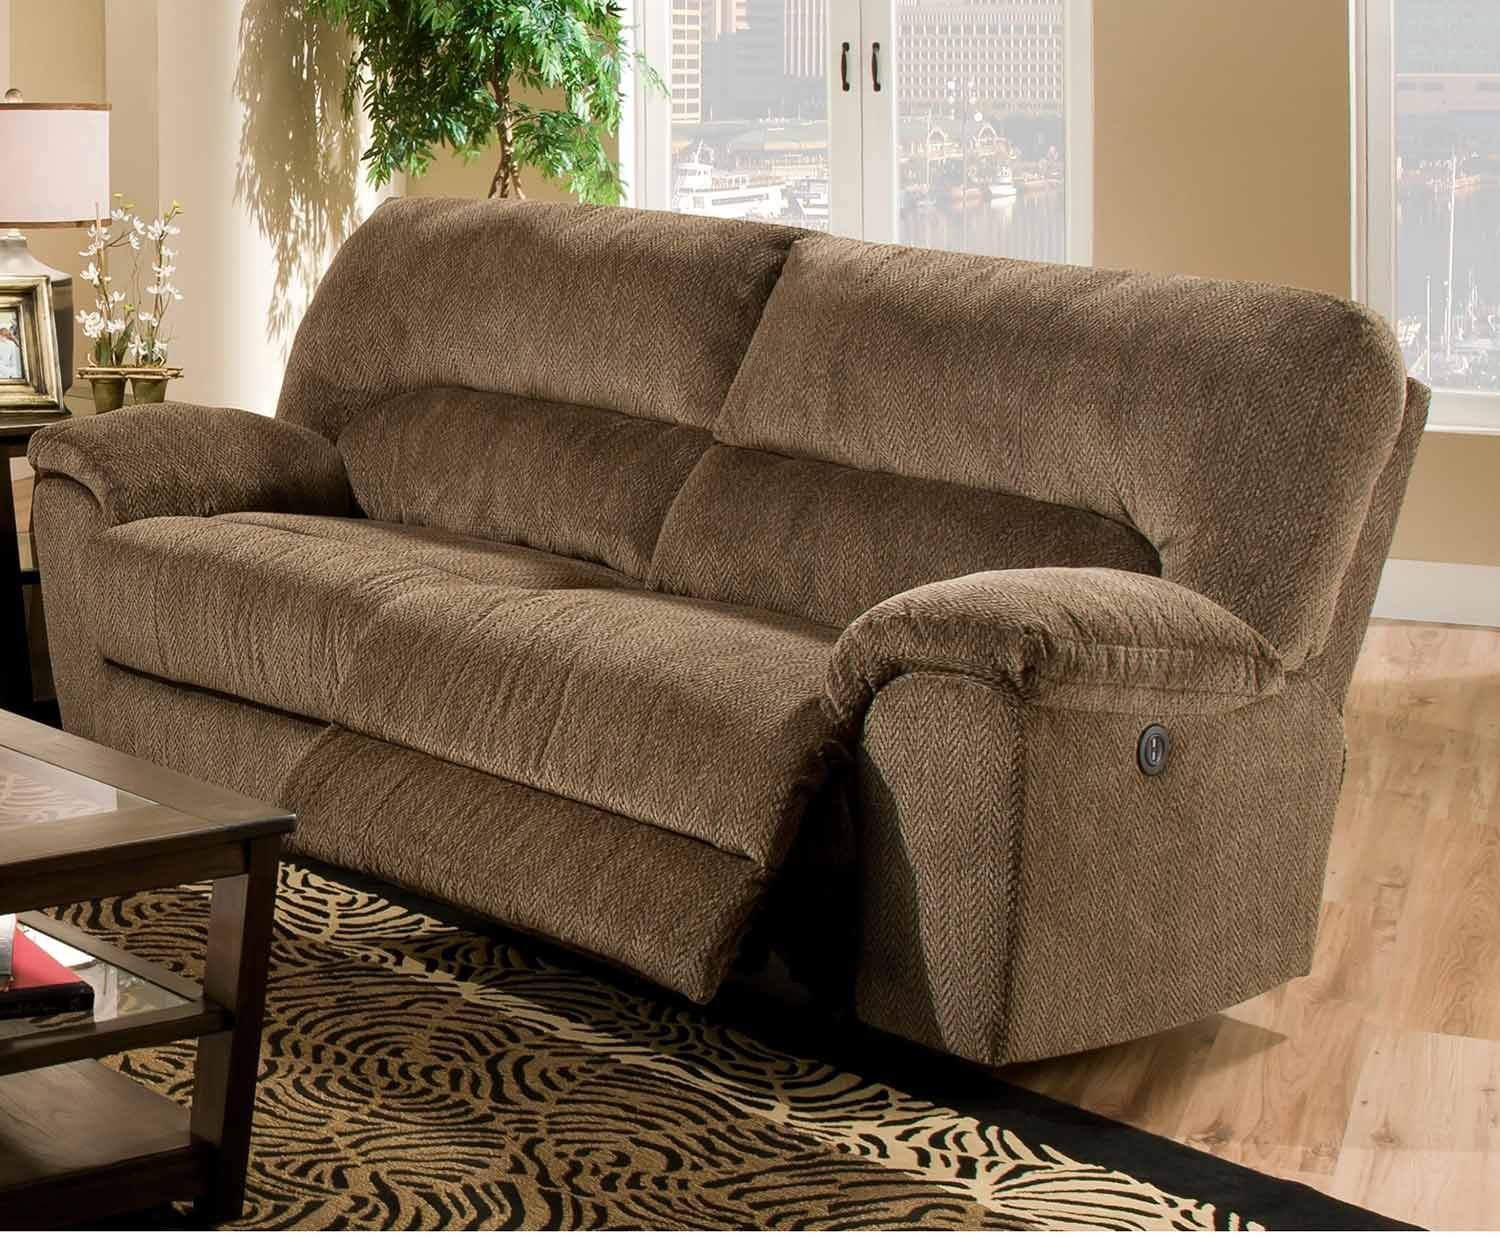 Chelsea home parr reclining sofa chf 18af7403 7980 gb at for Couch gb sofa